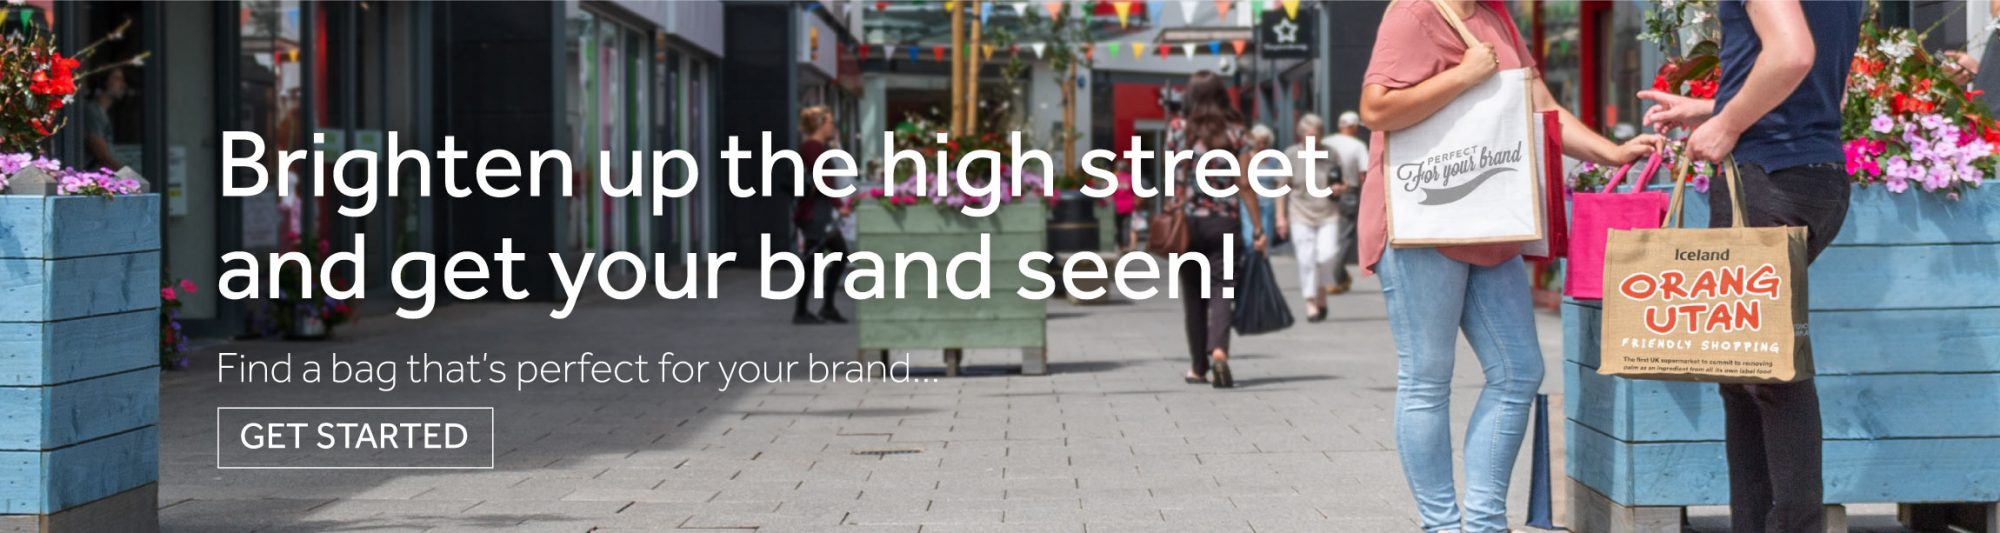 Brighten up the high street and get your brand seen. Find a bag that's perfect for your brand. Click here to get started.